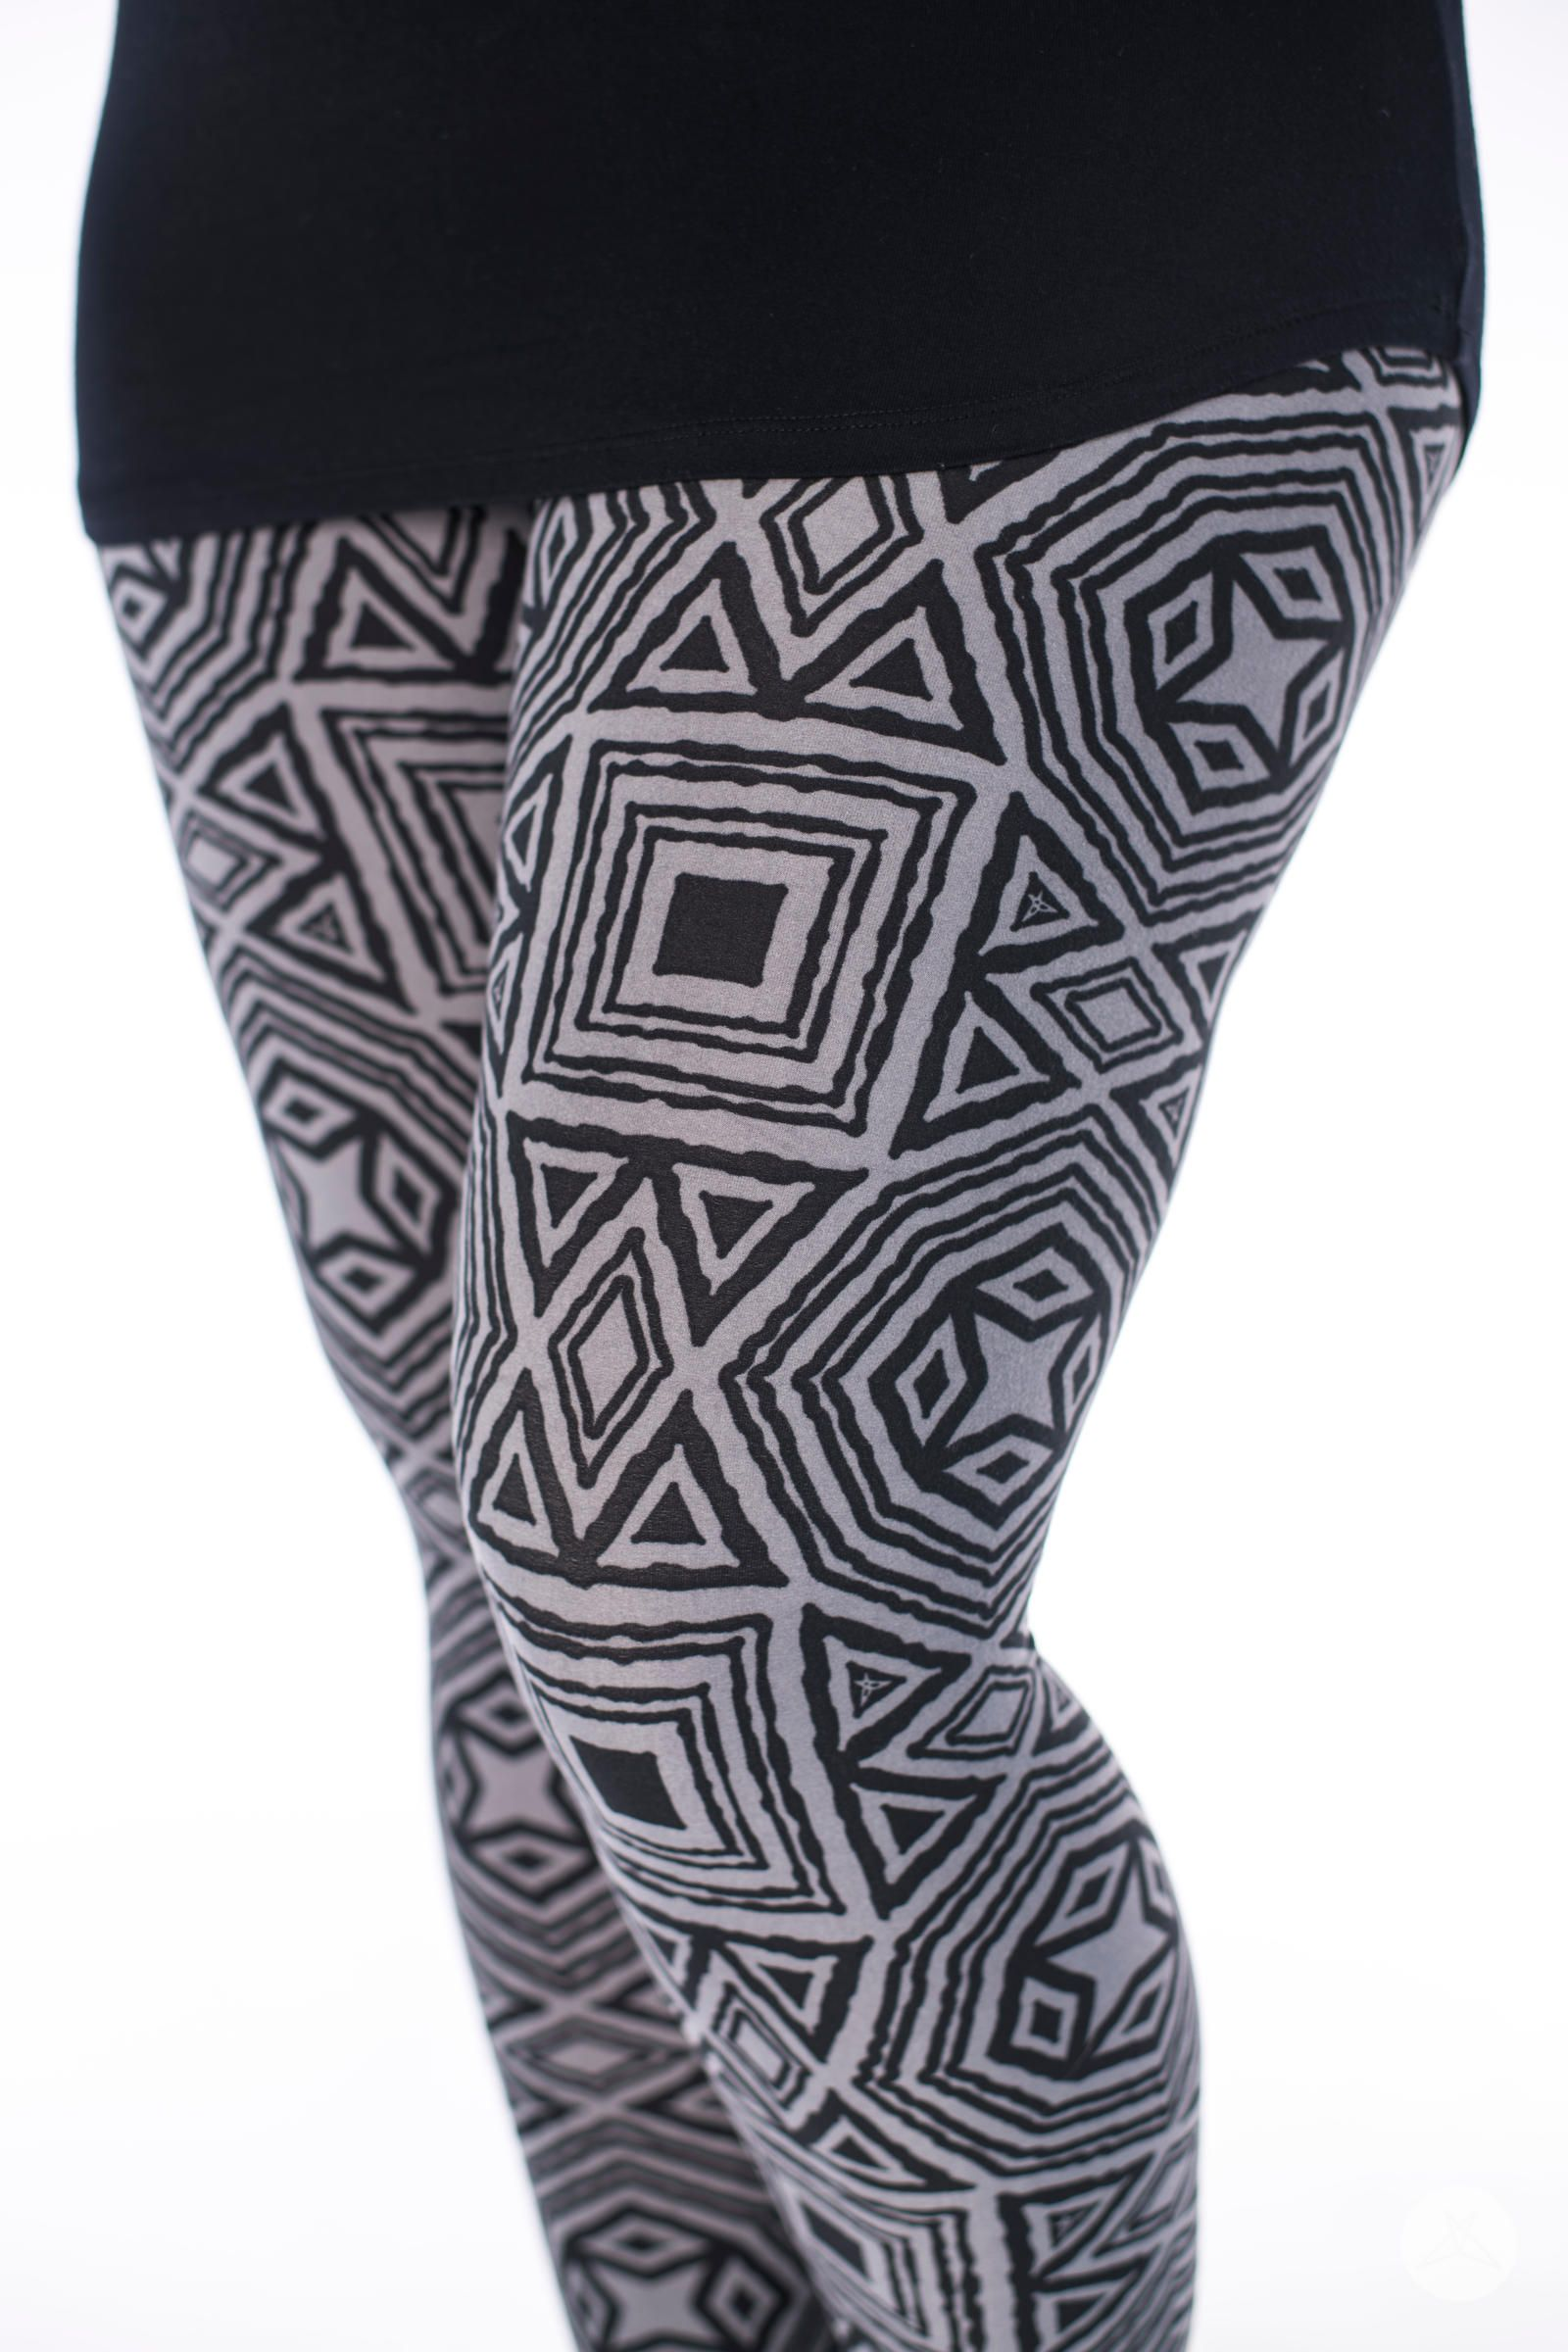 e3291cac7140ac SweetLegs.ca | Medieval Goddess geometric black and grey abstract shapes.  Leggings for women and kids, petite, one size, plus and girls.